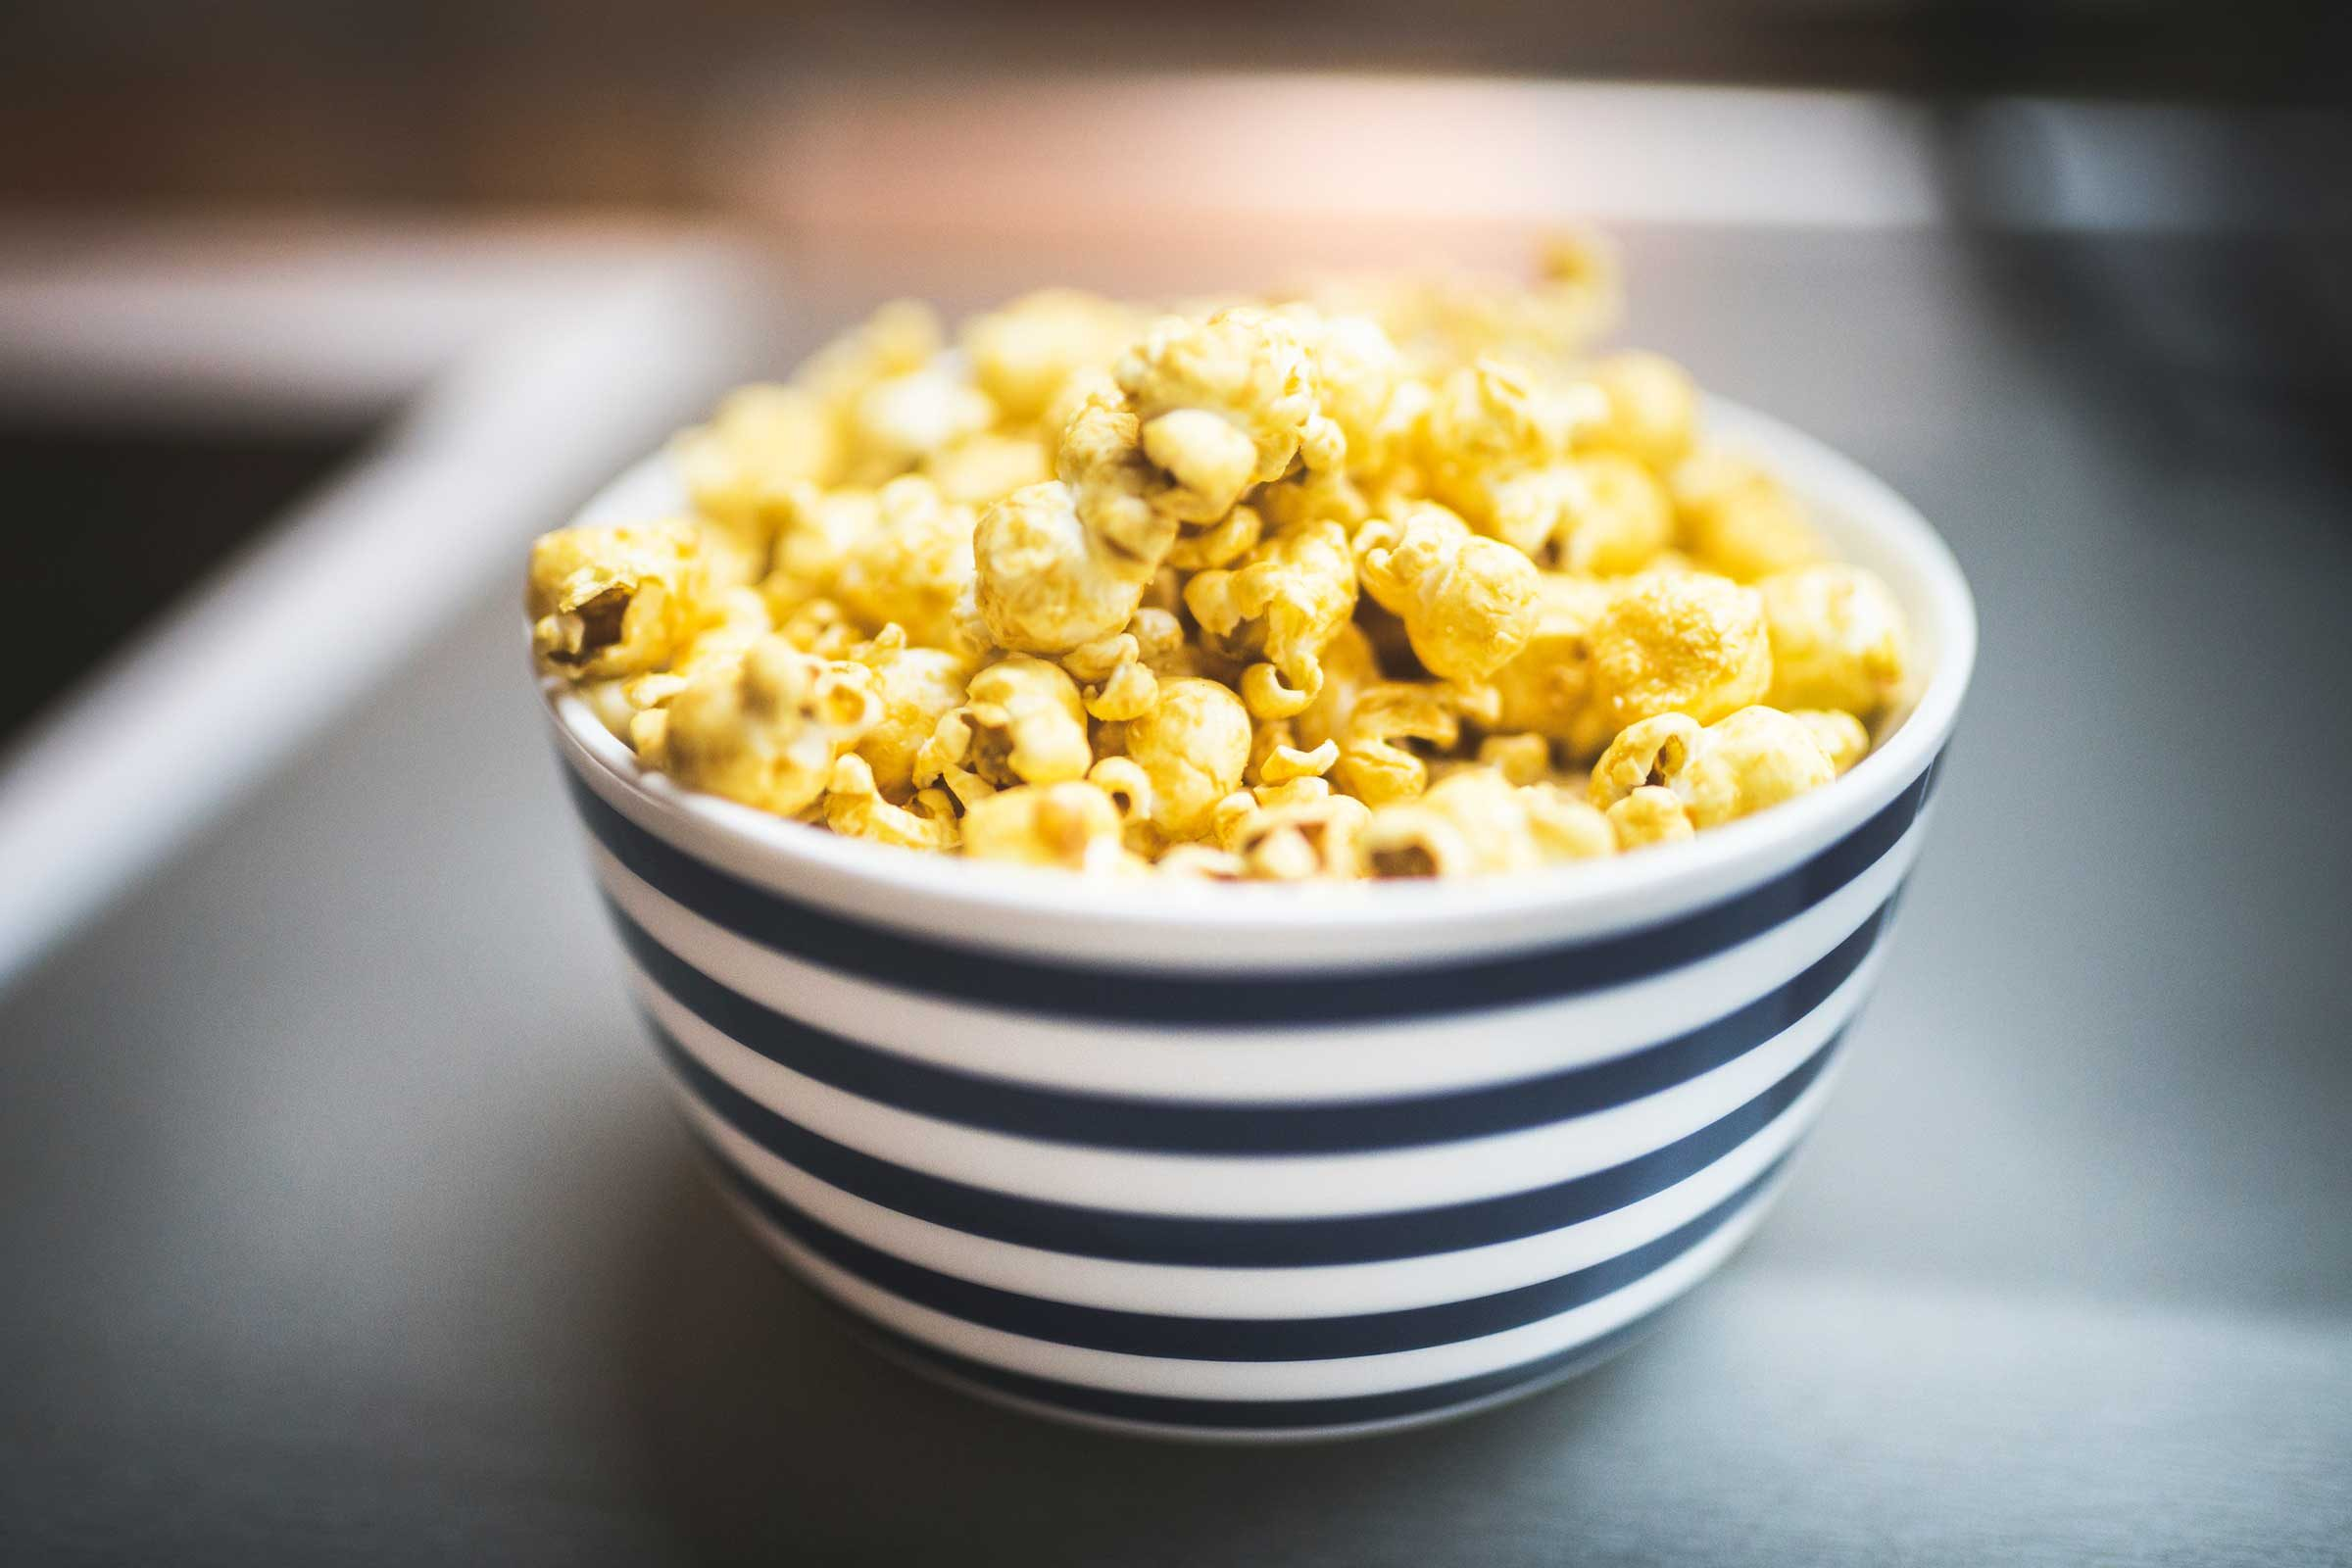 Popcorn May Help Fight Cancer